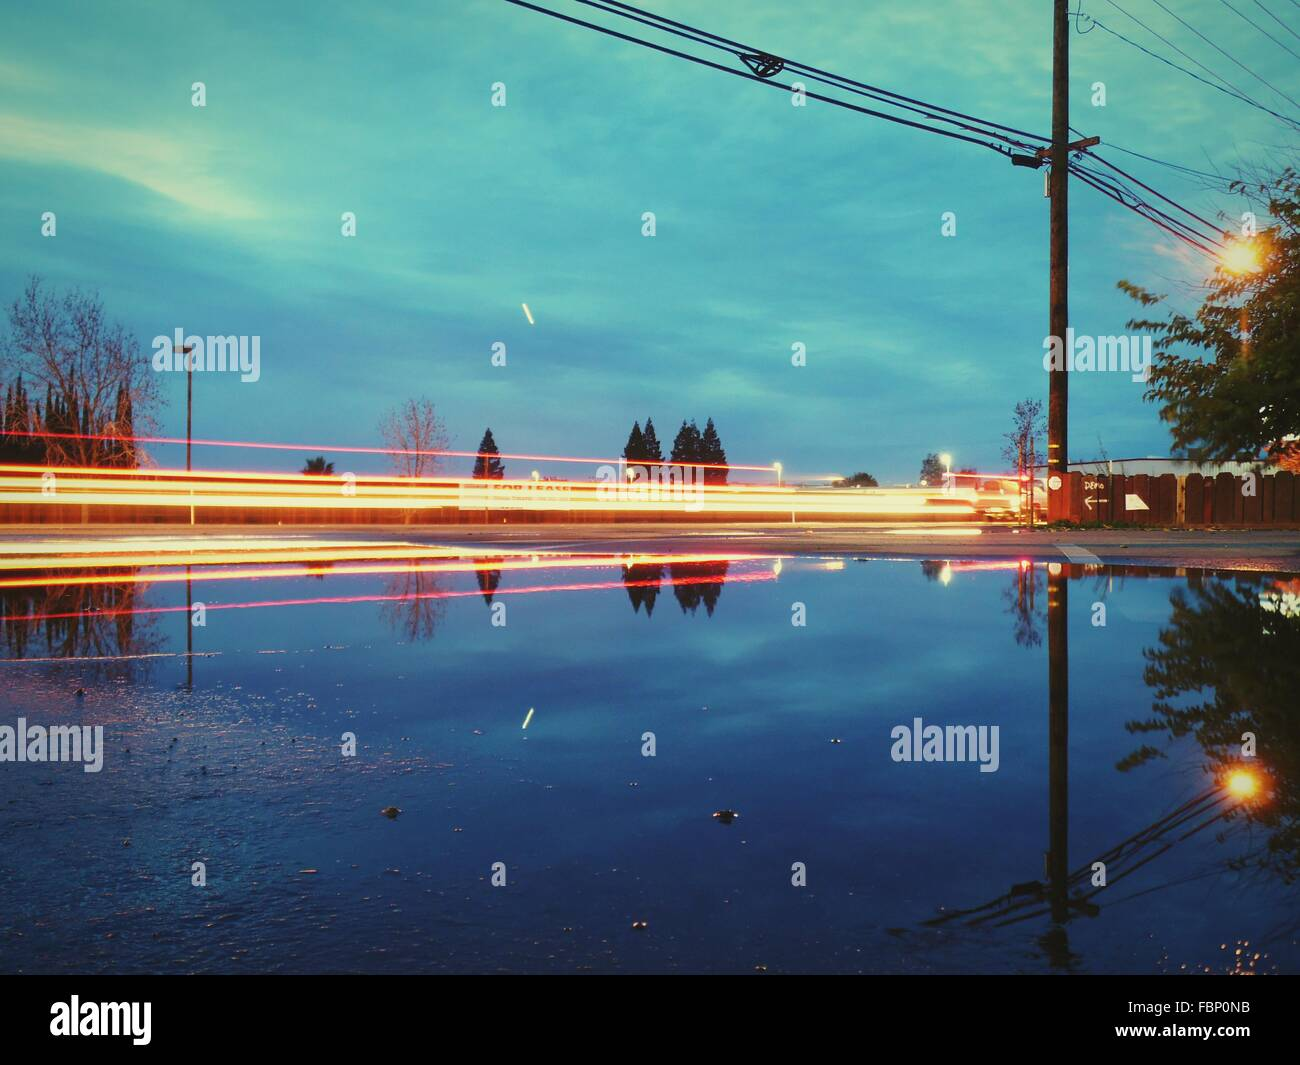 Reflection Of Light Trails And Electricity Pylon In Puddle - Stock Image